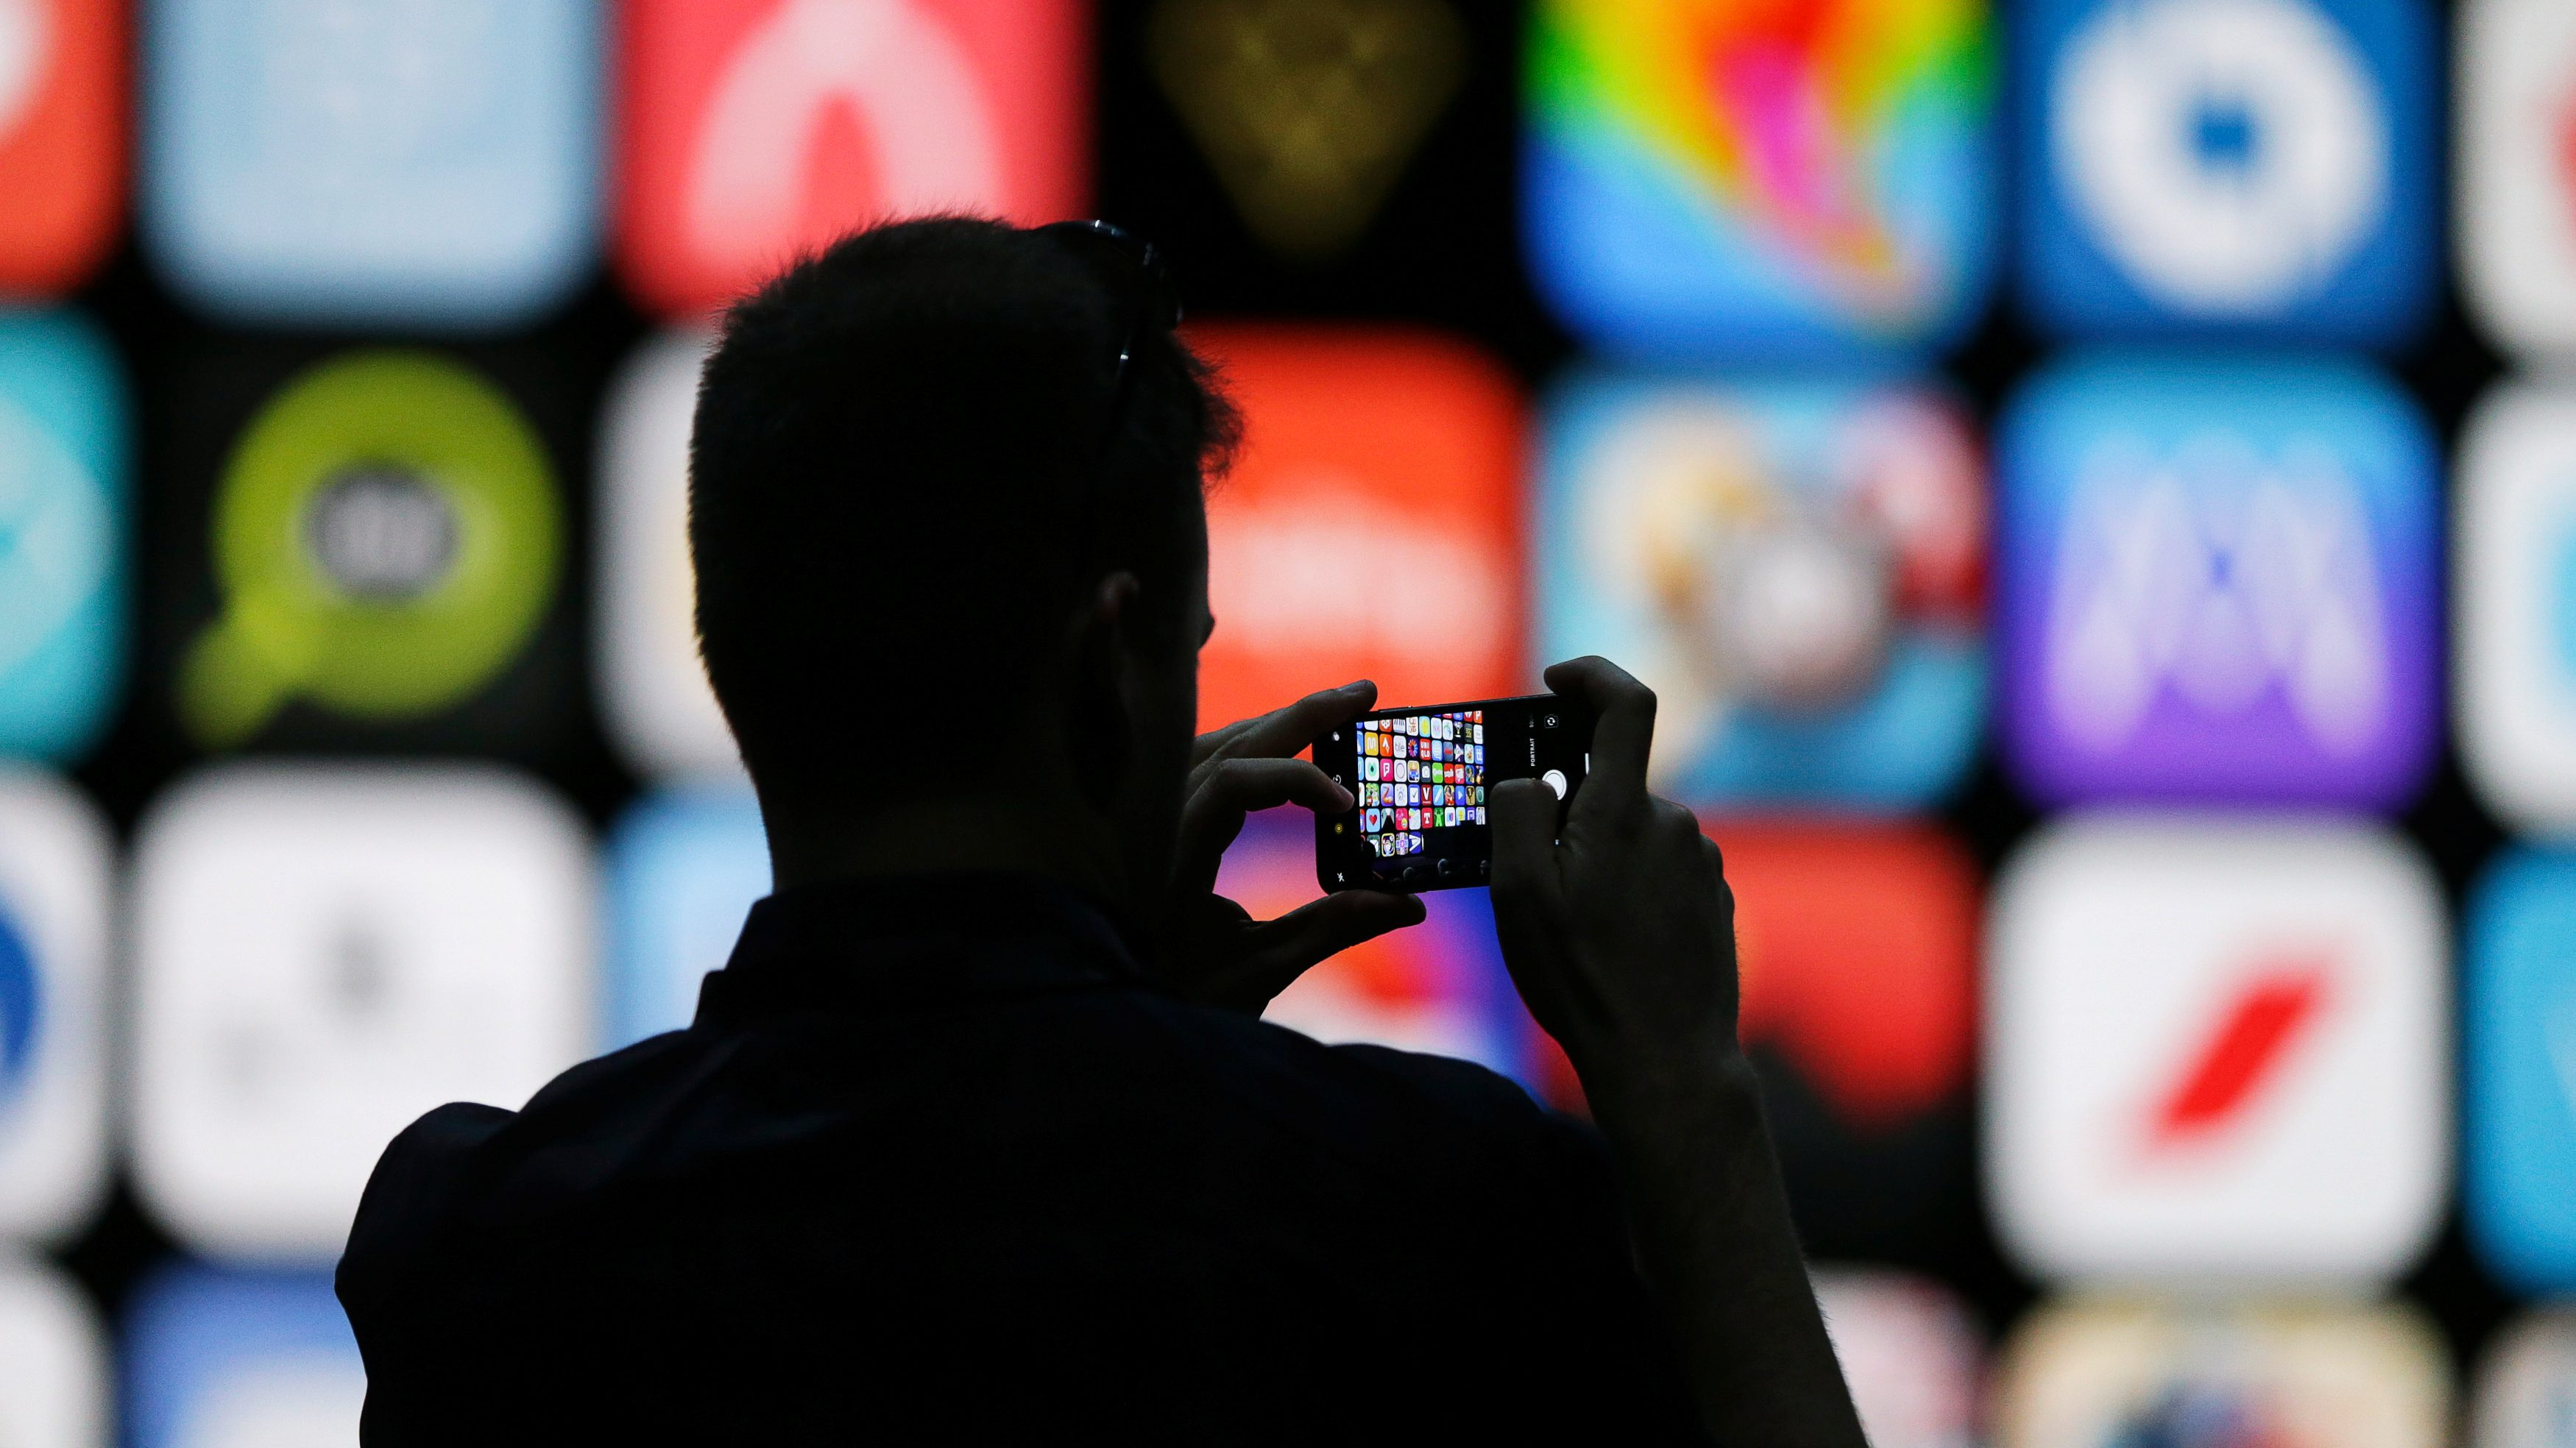 Five productivity and creativity apps popular in Silicon Valley